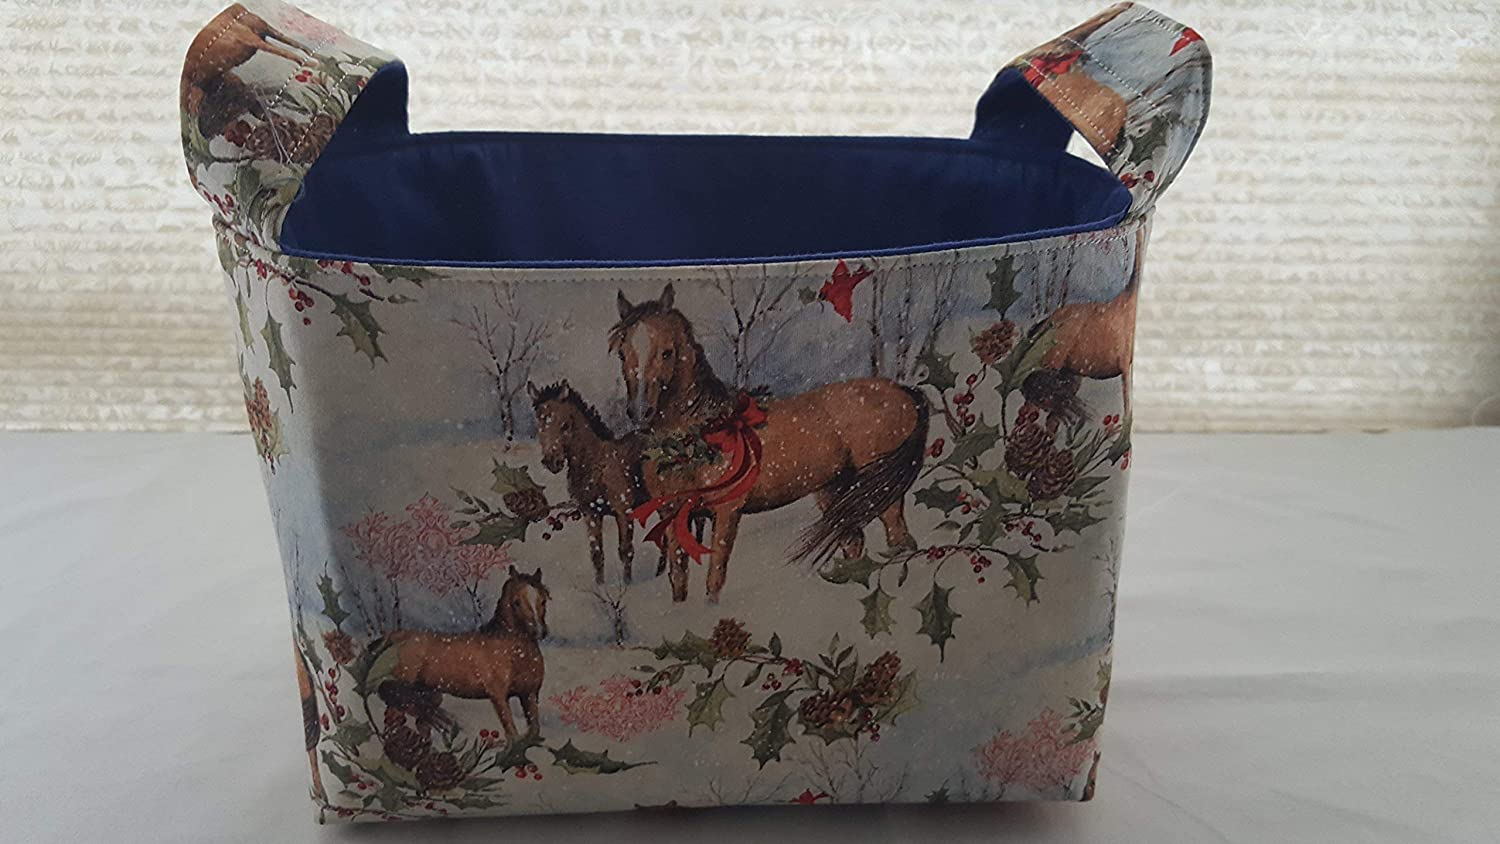 Christmas Fabric Organizer Basket Bin Caddy Storage Container - Horses with Wreaths